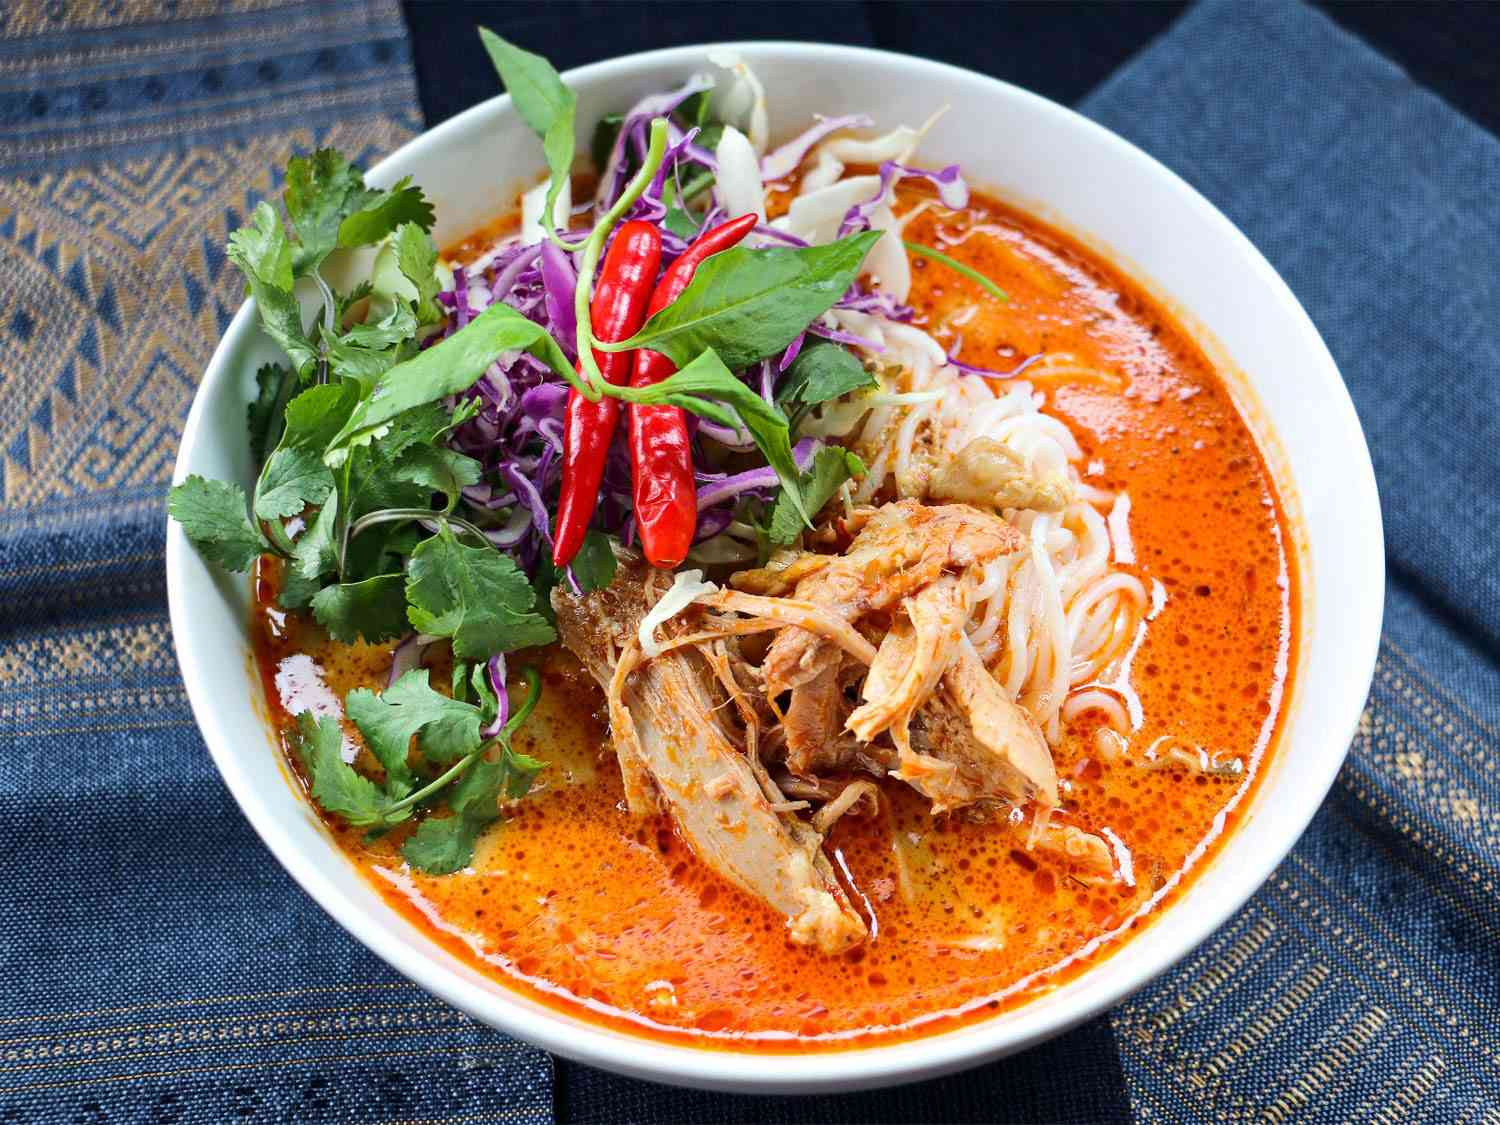 A bowl of khao poon: fermented vermicelli noodles in a bright red curry broth, with meat, herbs, red chilies, and purple cabbage